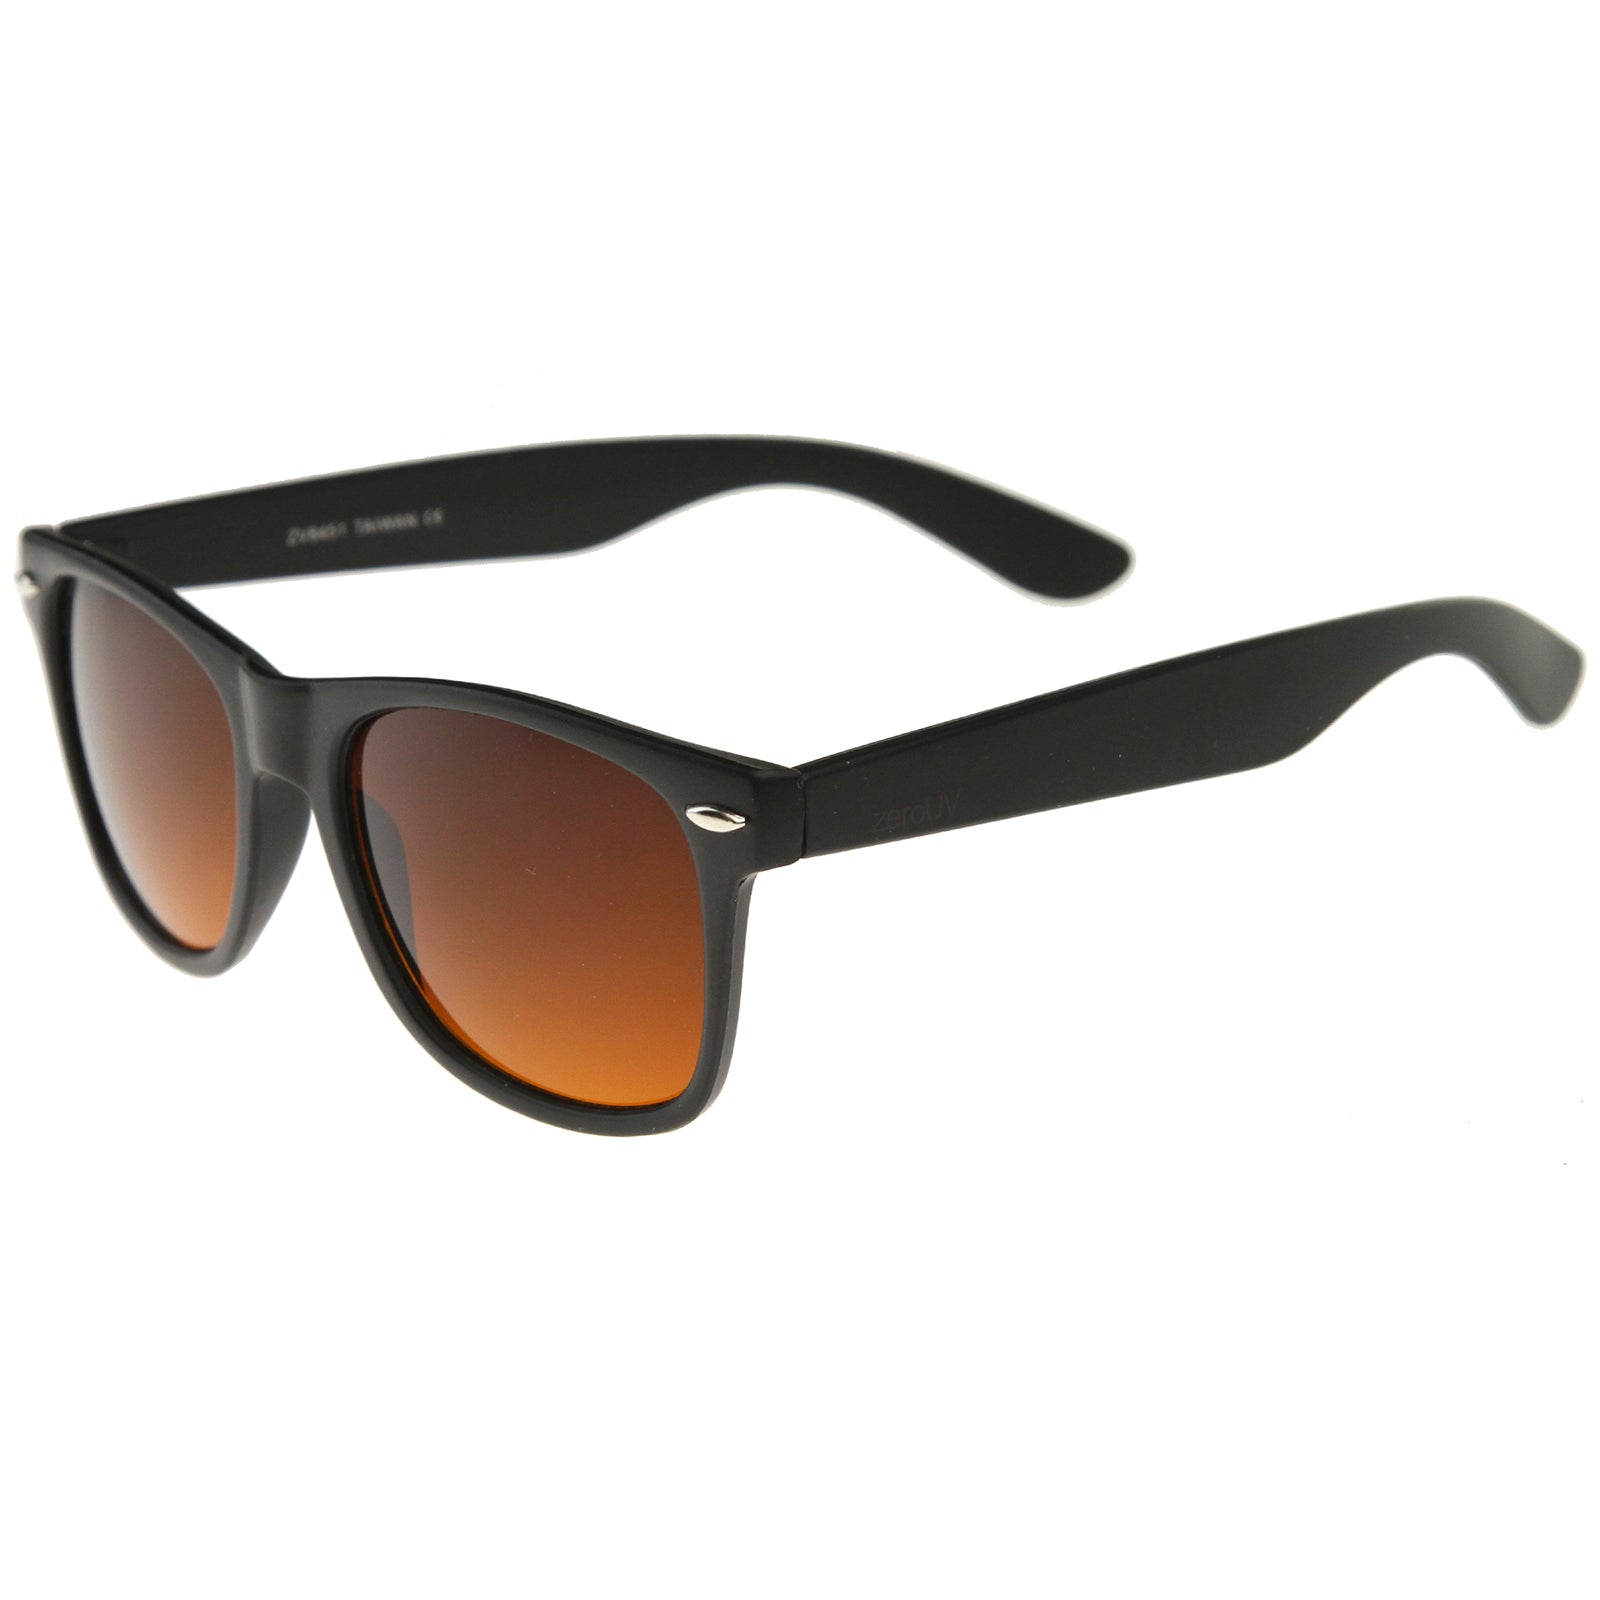 Classic Driving Blue Blocking Amber Tinted Lens Horn Rimmed Sunglasses 54mm - sunglass.la